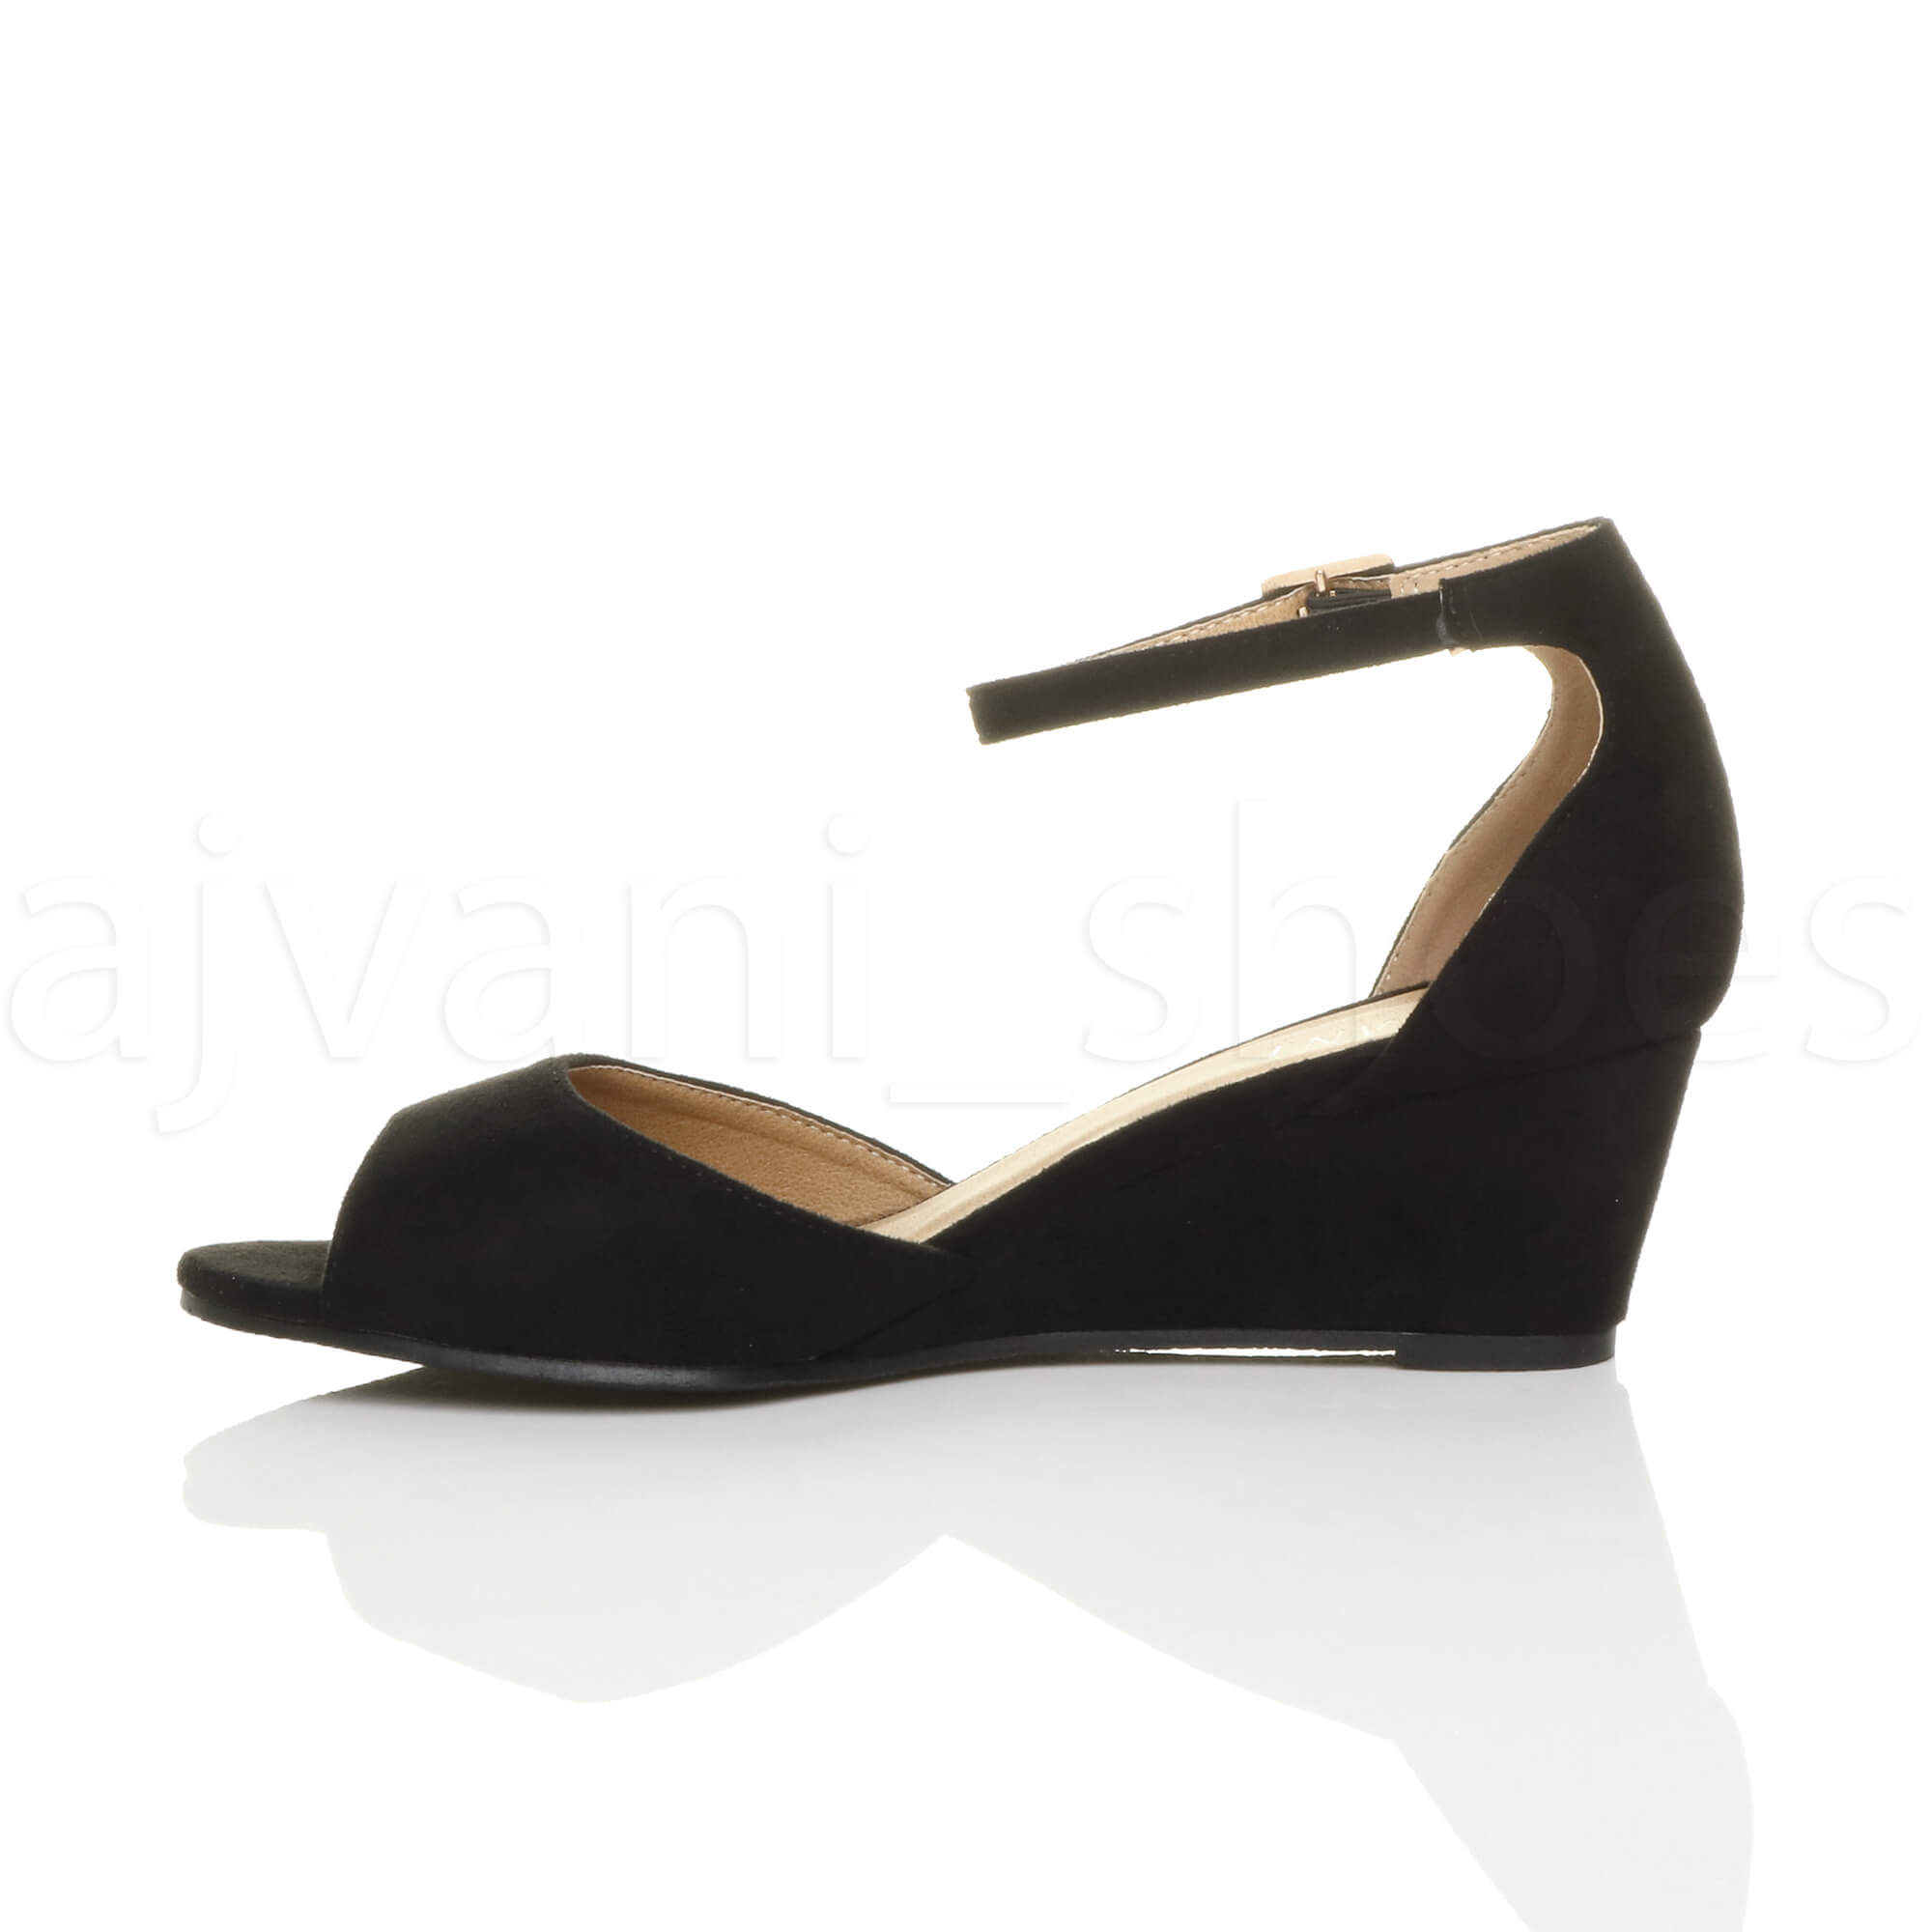 WOMENS-LADIES-LOW-MID-WEDGE-HEEL-ANKLE-STRAP-SMART-CASUAL-EVENING-SANDALS-SIZE thumbnail 20